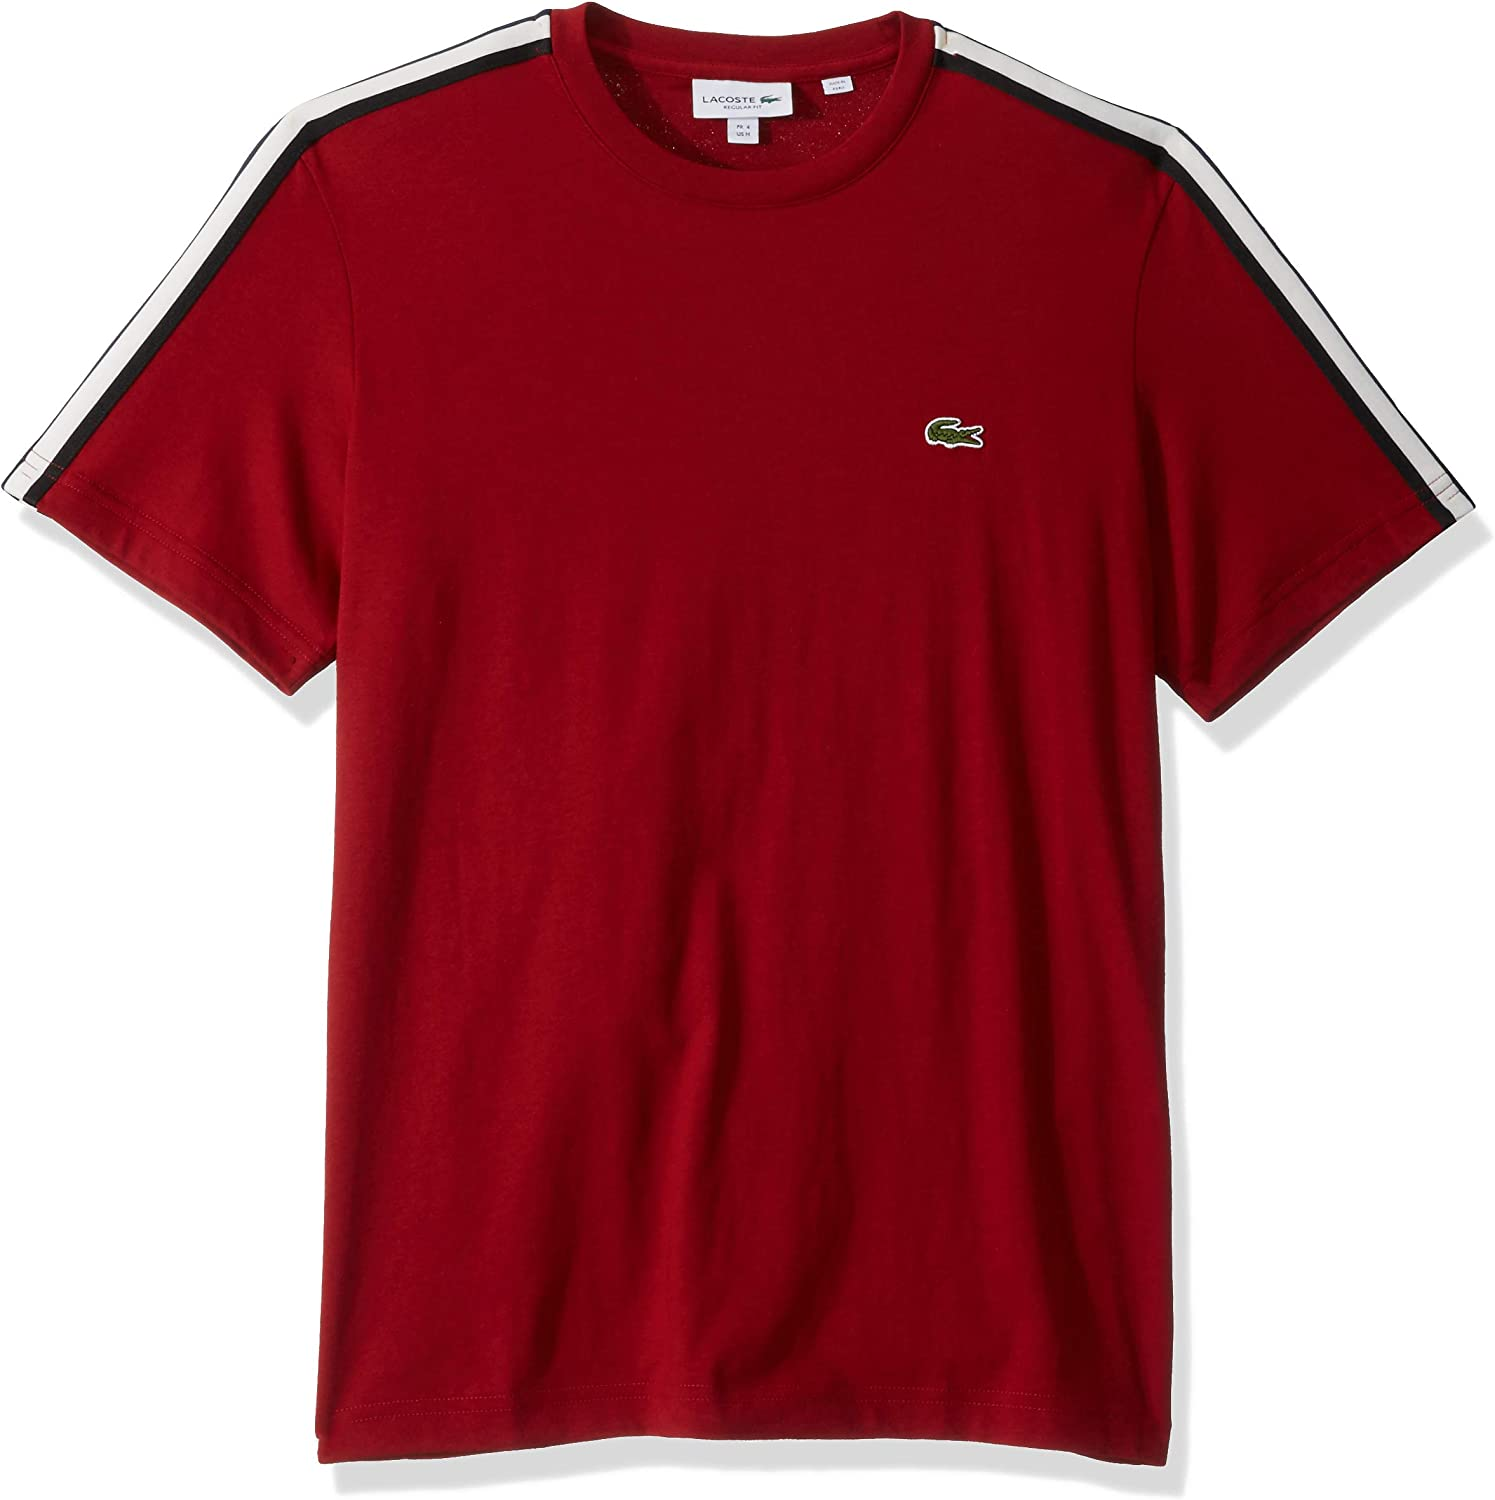 Lacoste Mens Short Sleeve Jersey Striped Sleeve T-Shirt